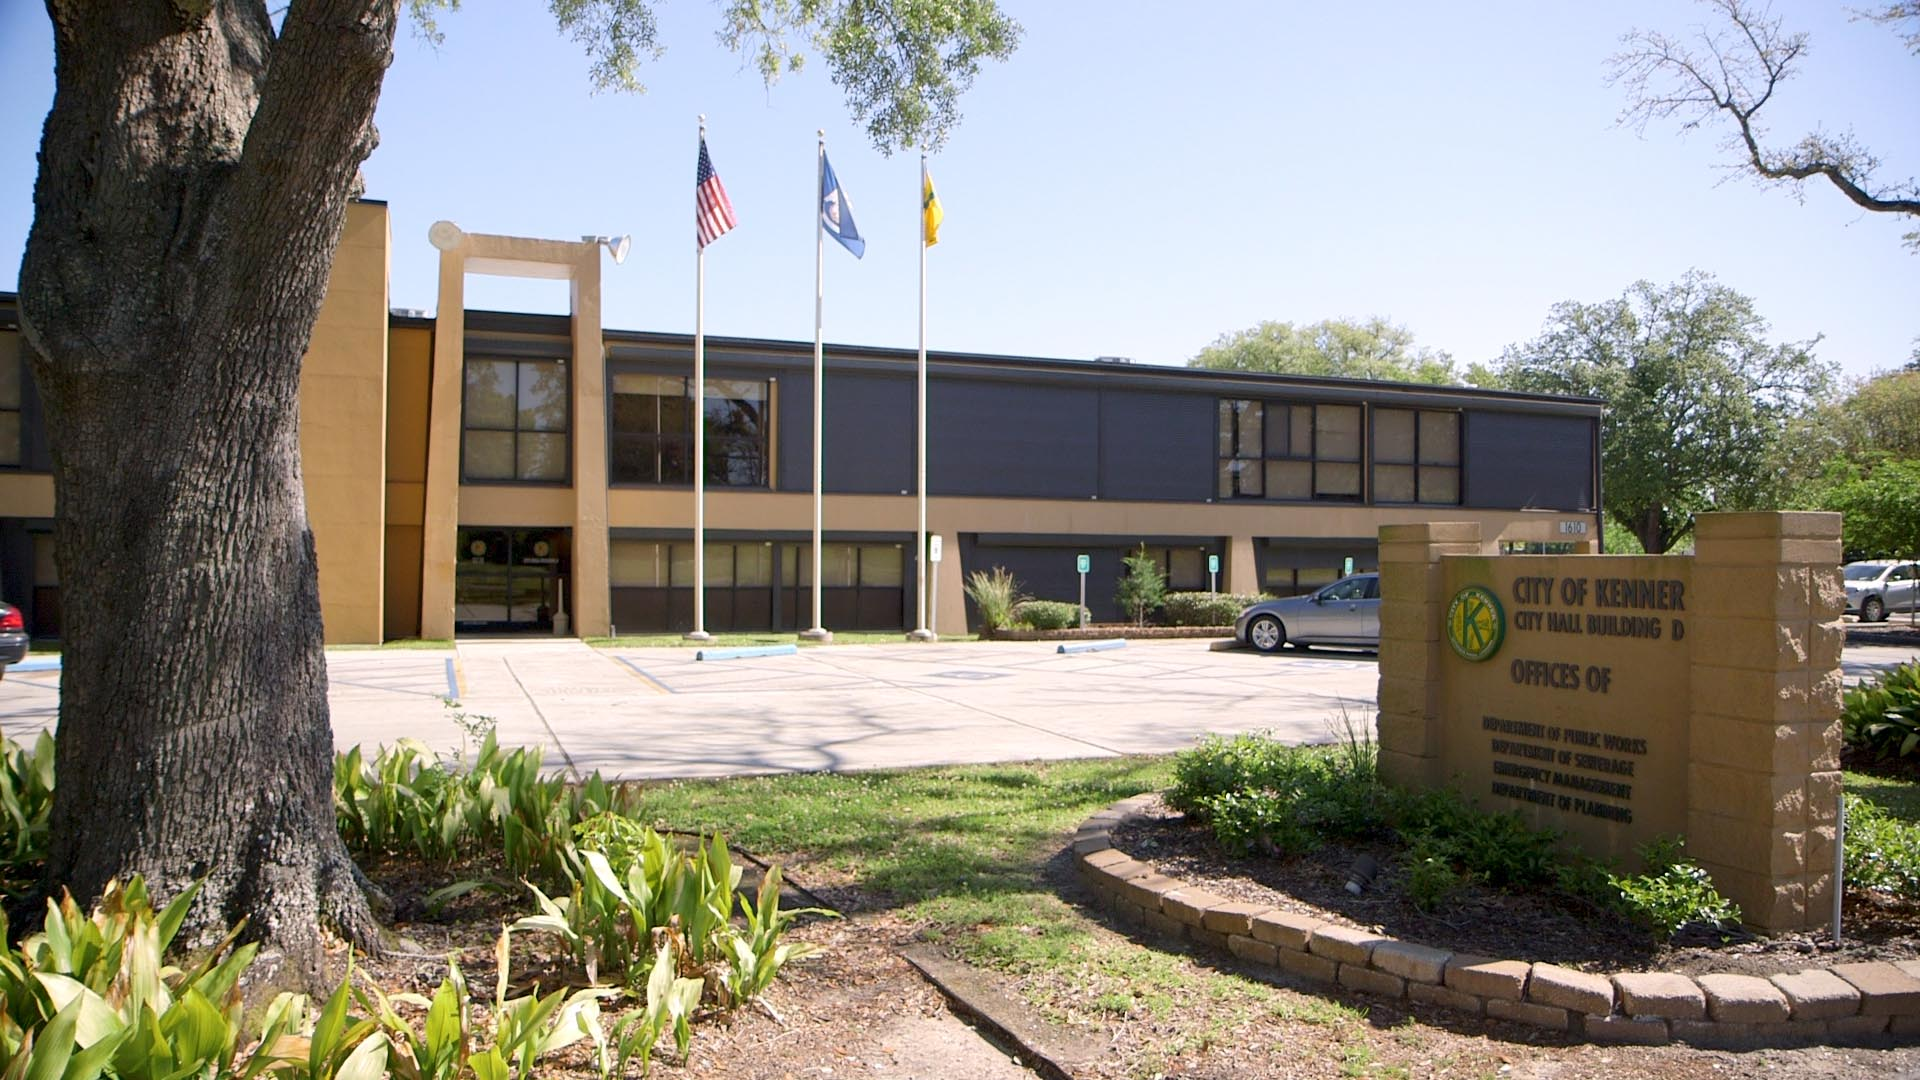 City of Kenner Government Picture